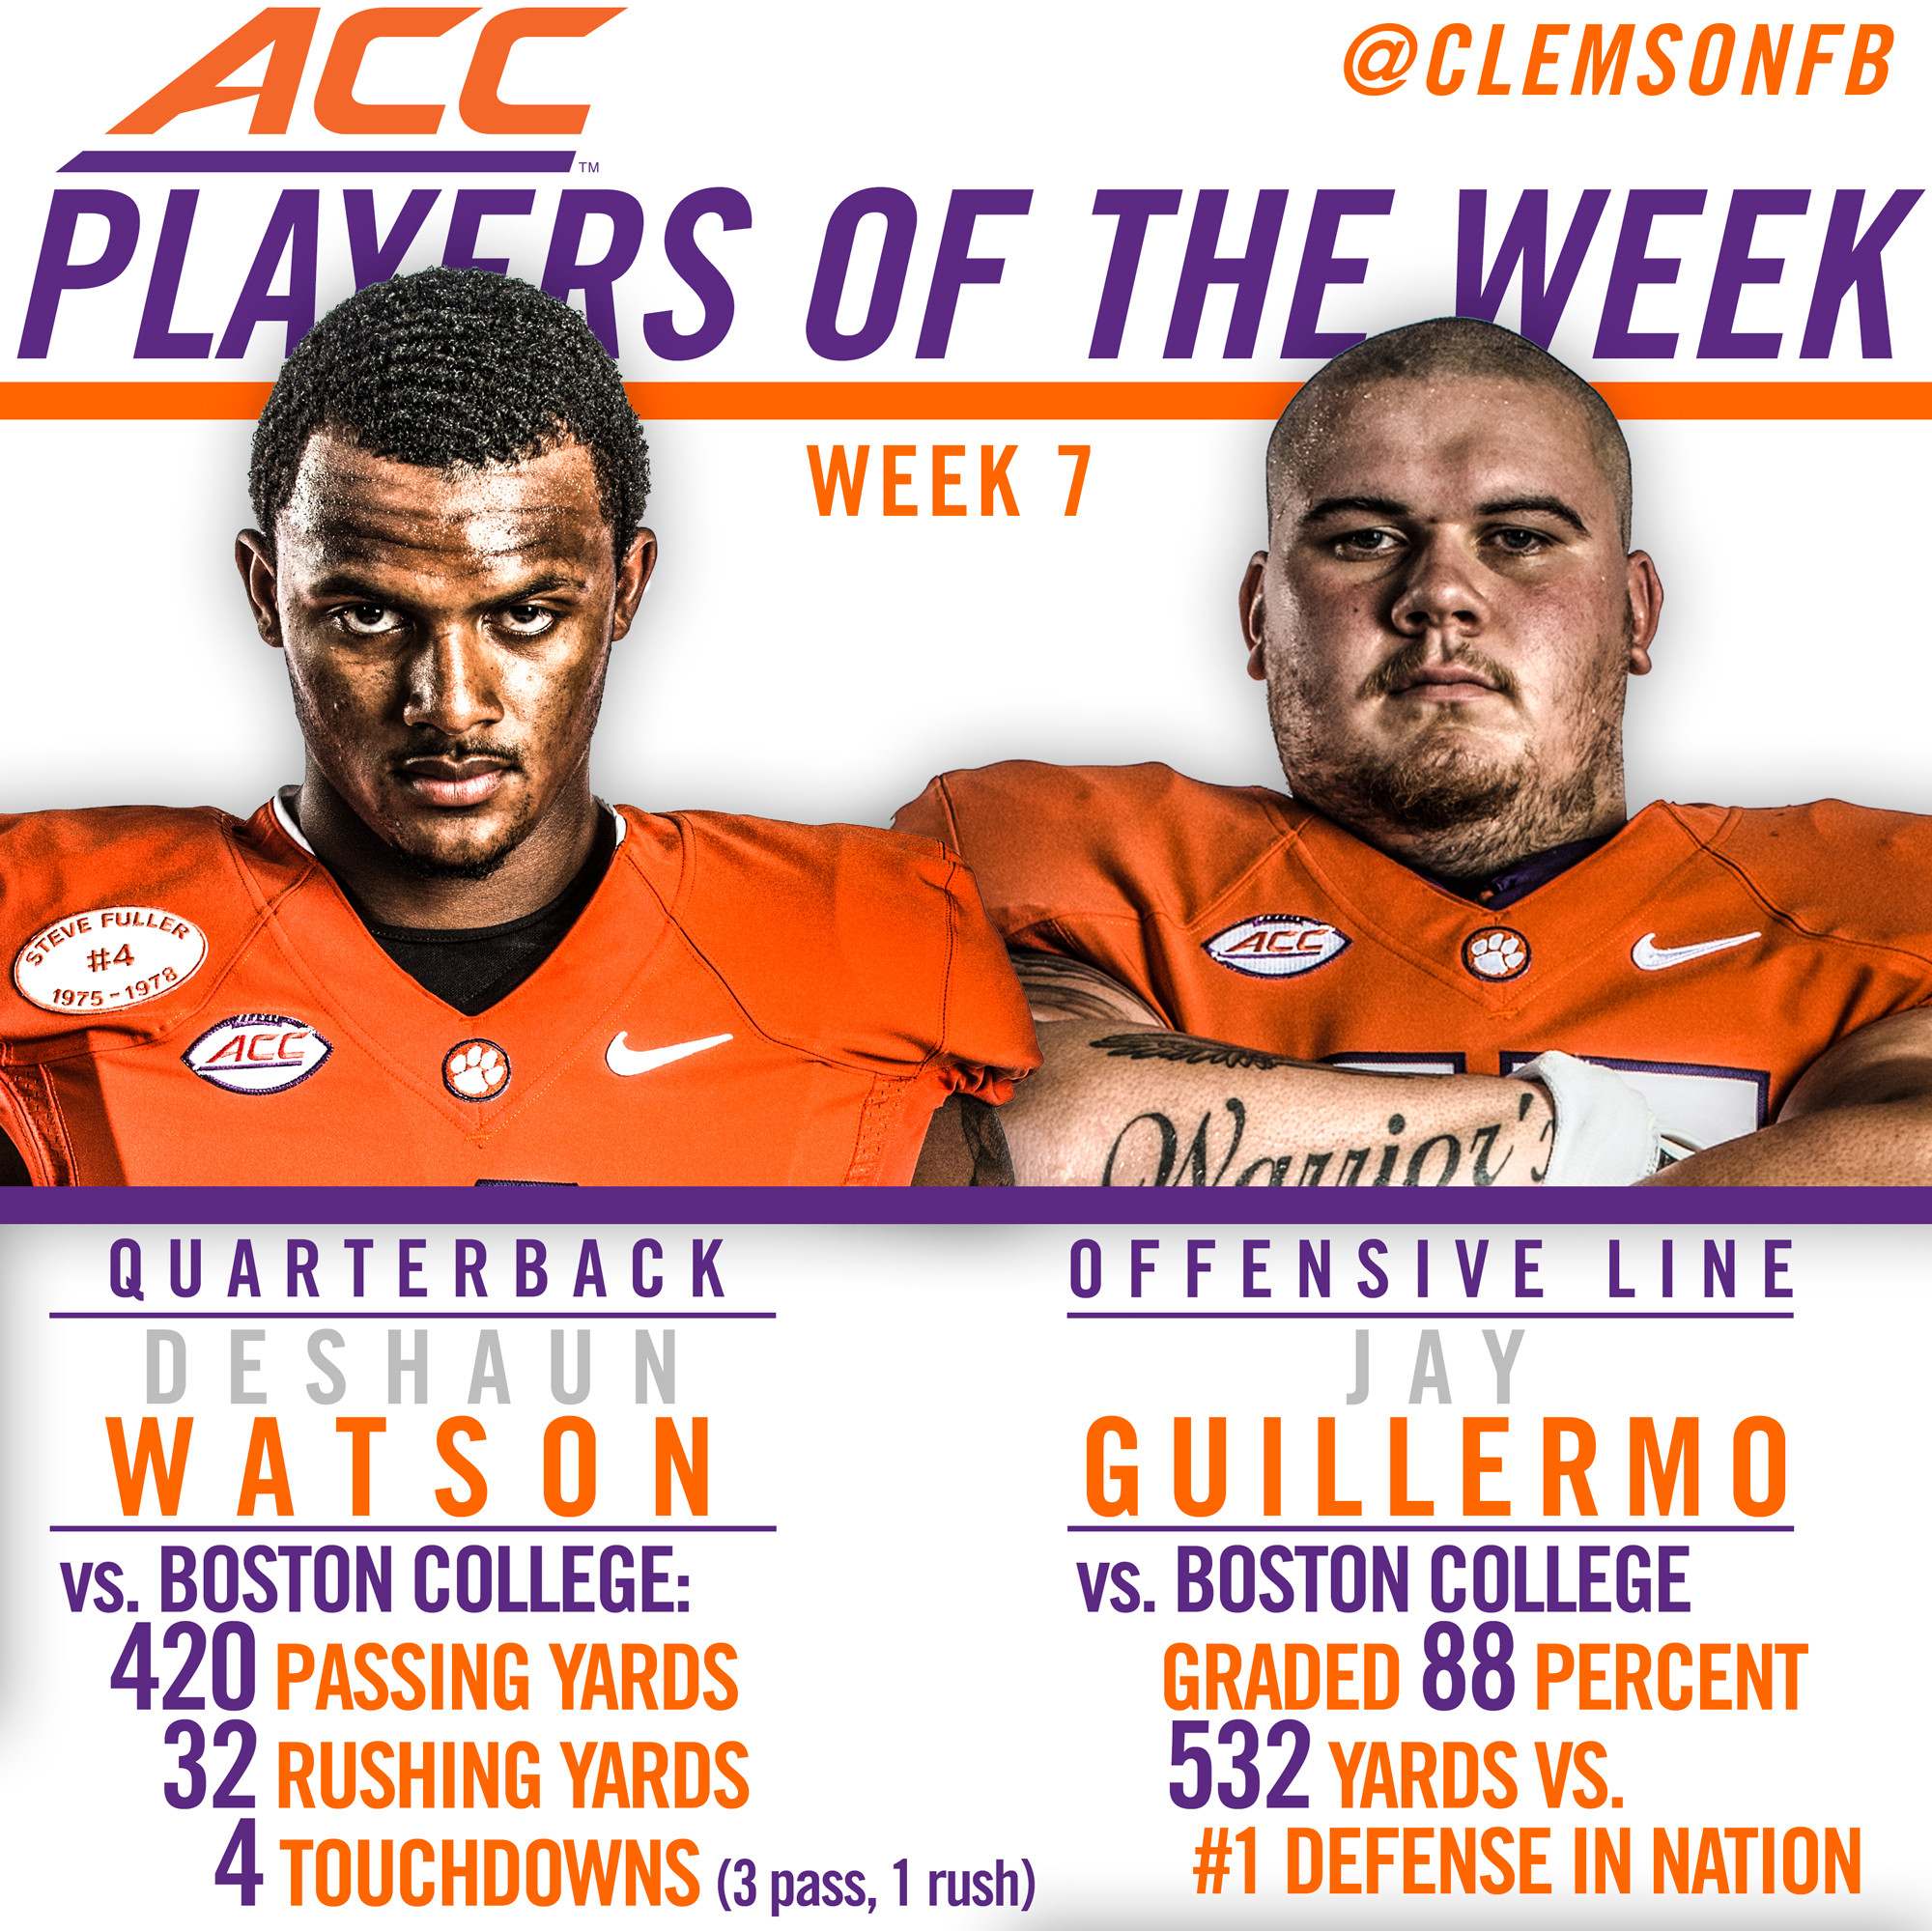 Watson and Guillermo Named ACC Players of the Week